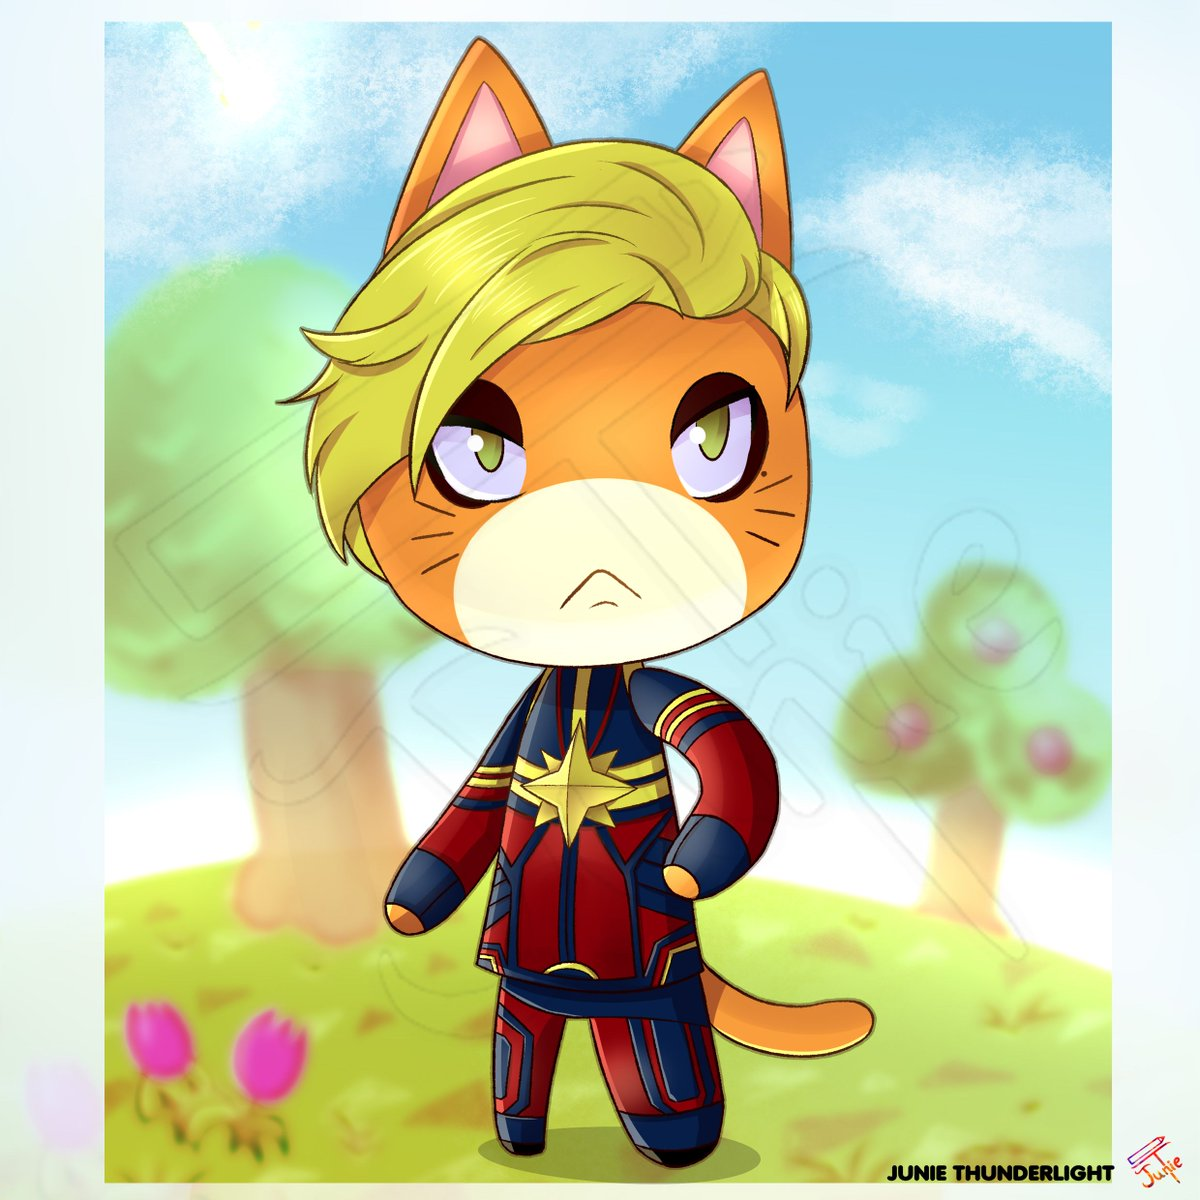 My partner suggested me to draw Captain Marvel in Animal Crossing style and look at the final result! I wanted Brie to be her favourite animal but, since I couldn't find it, I chose a cat (because we all love cats, right?).pic.twitter.com/K0JgyHOrc4